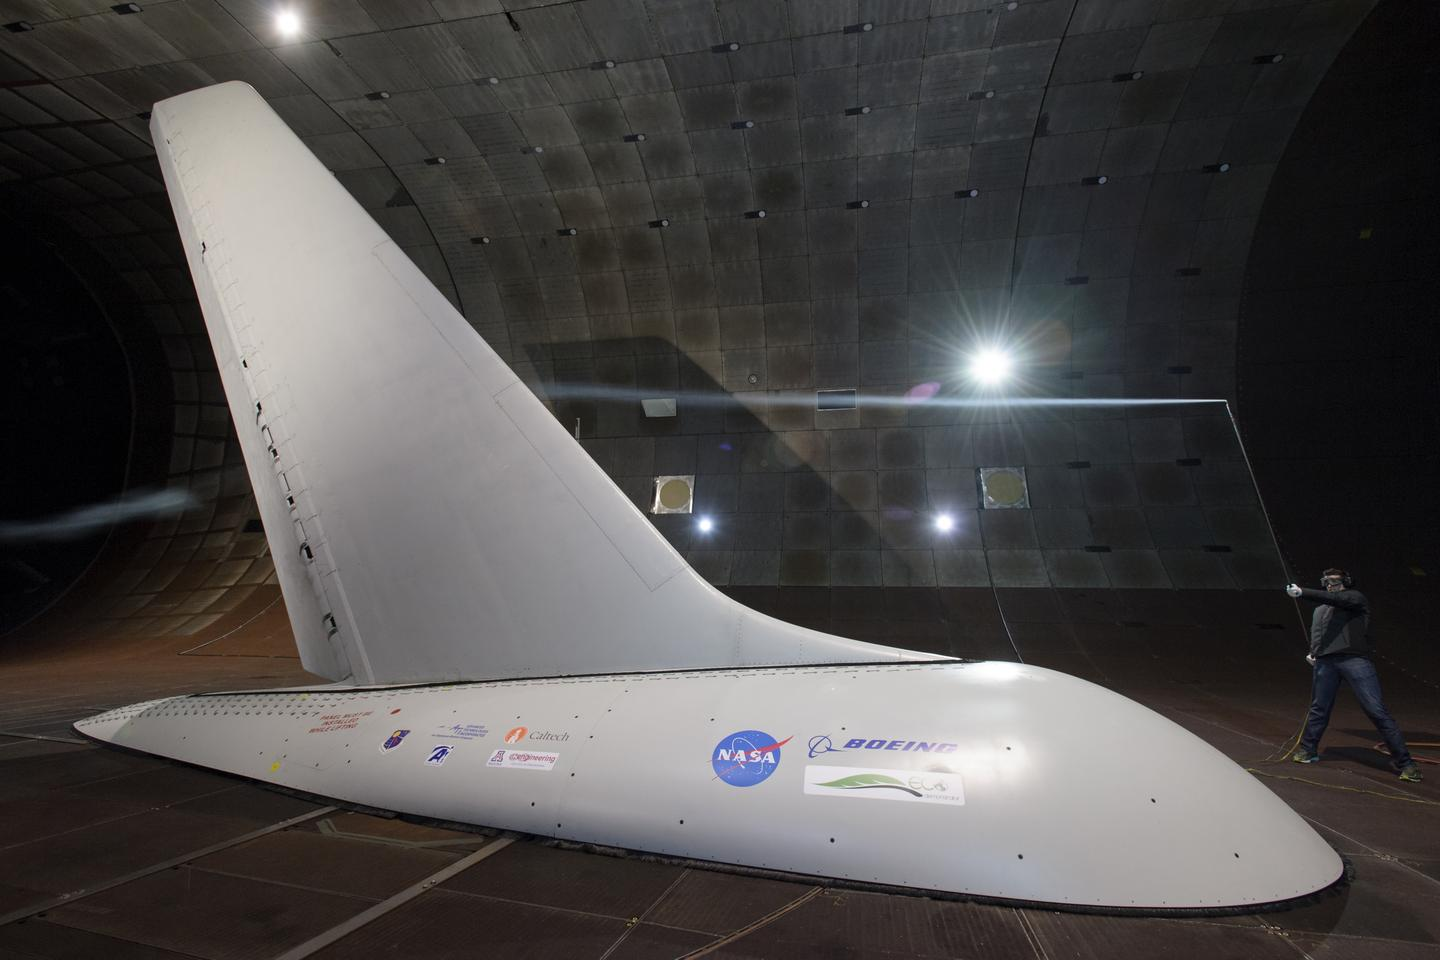 One of the innovations under the ERA would allow aircraft to be built with smaller tail fins, by integrating tiny air nozzles in the structure that allow for increased control with a smaller surface area